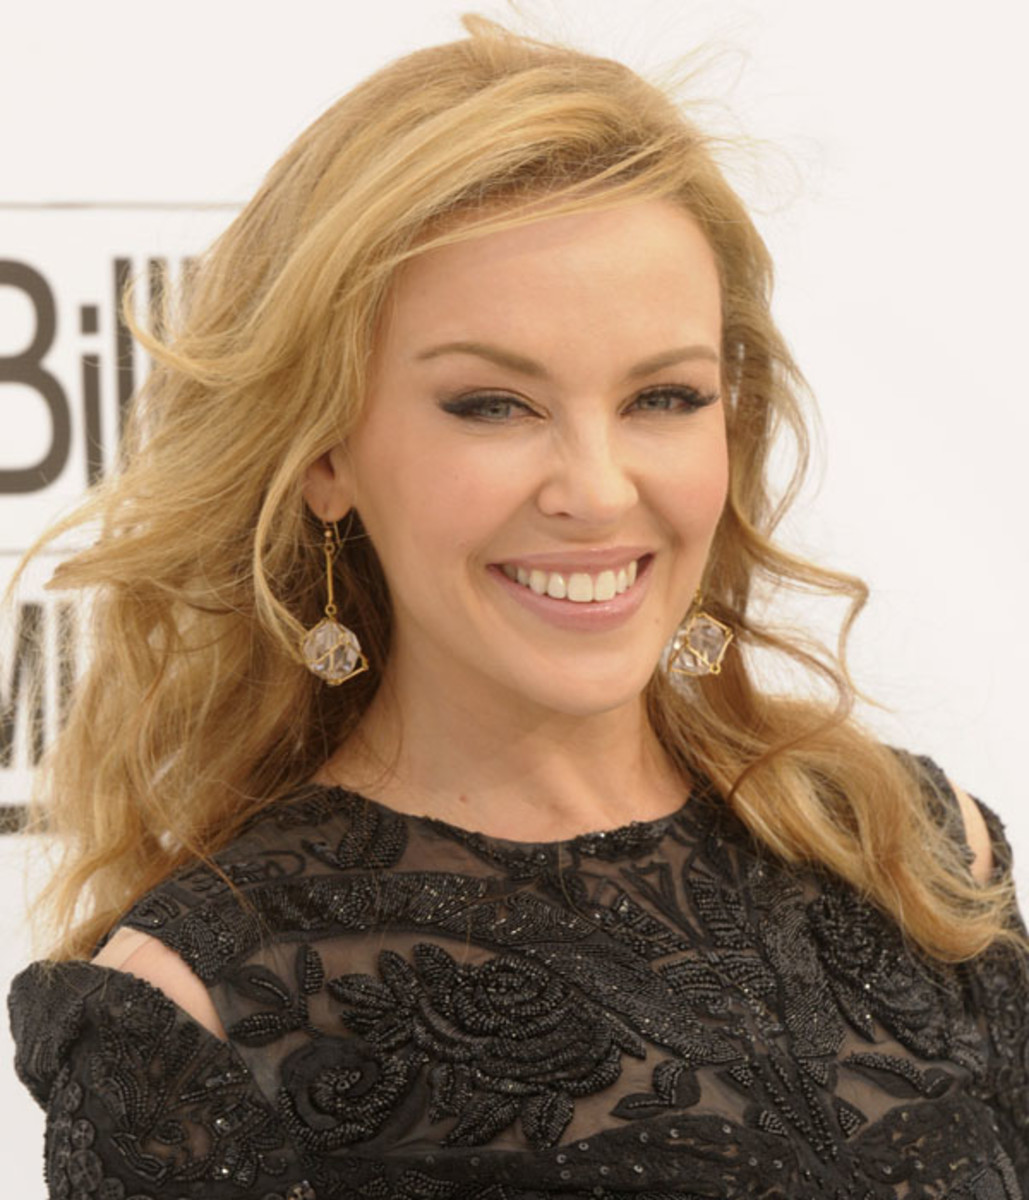 Kylie-Minogue-Billboard-Music-Awards-2011